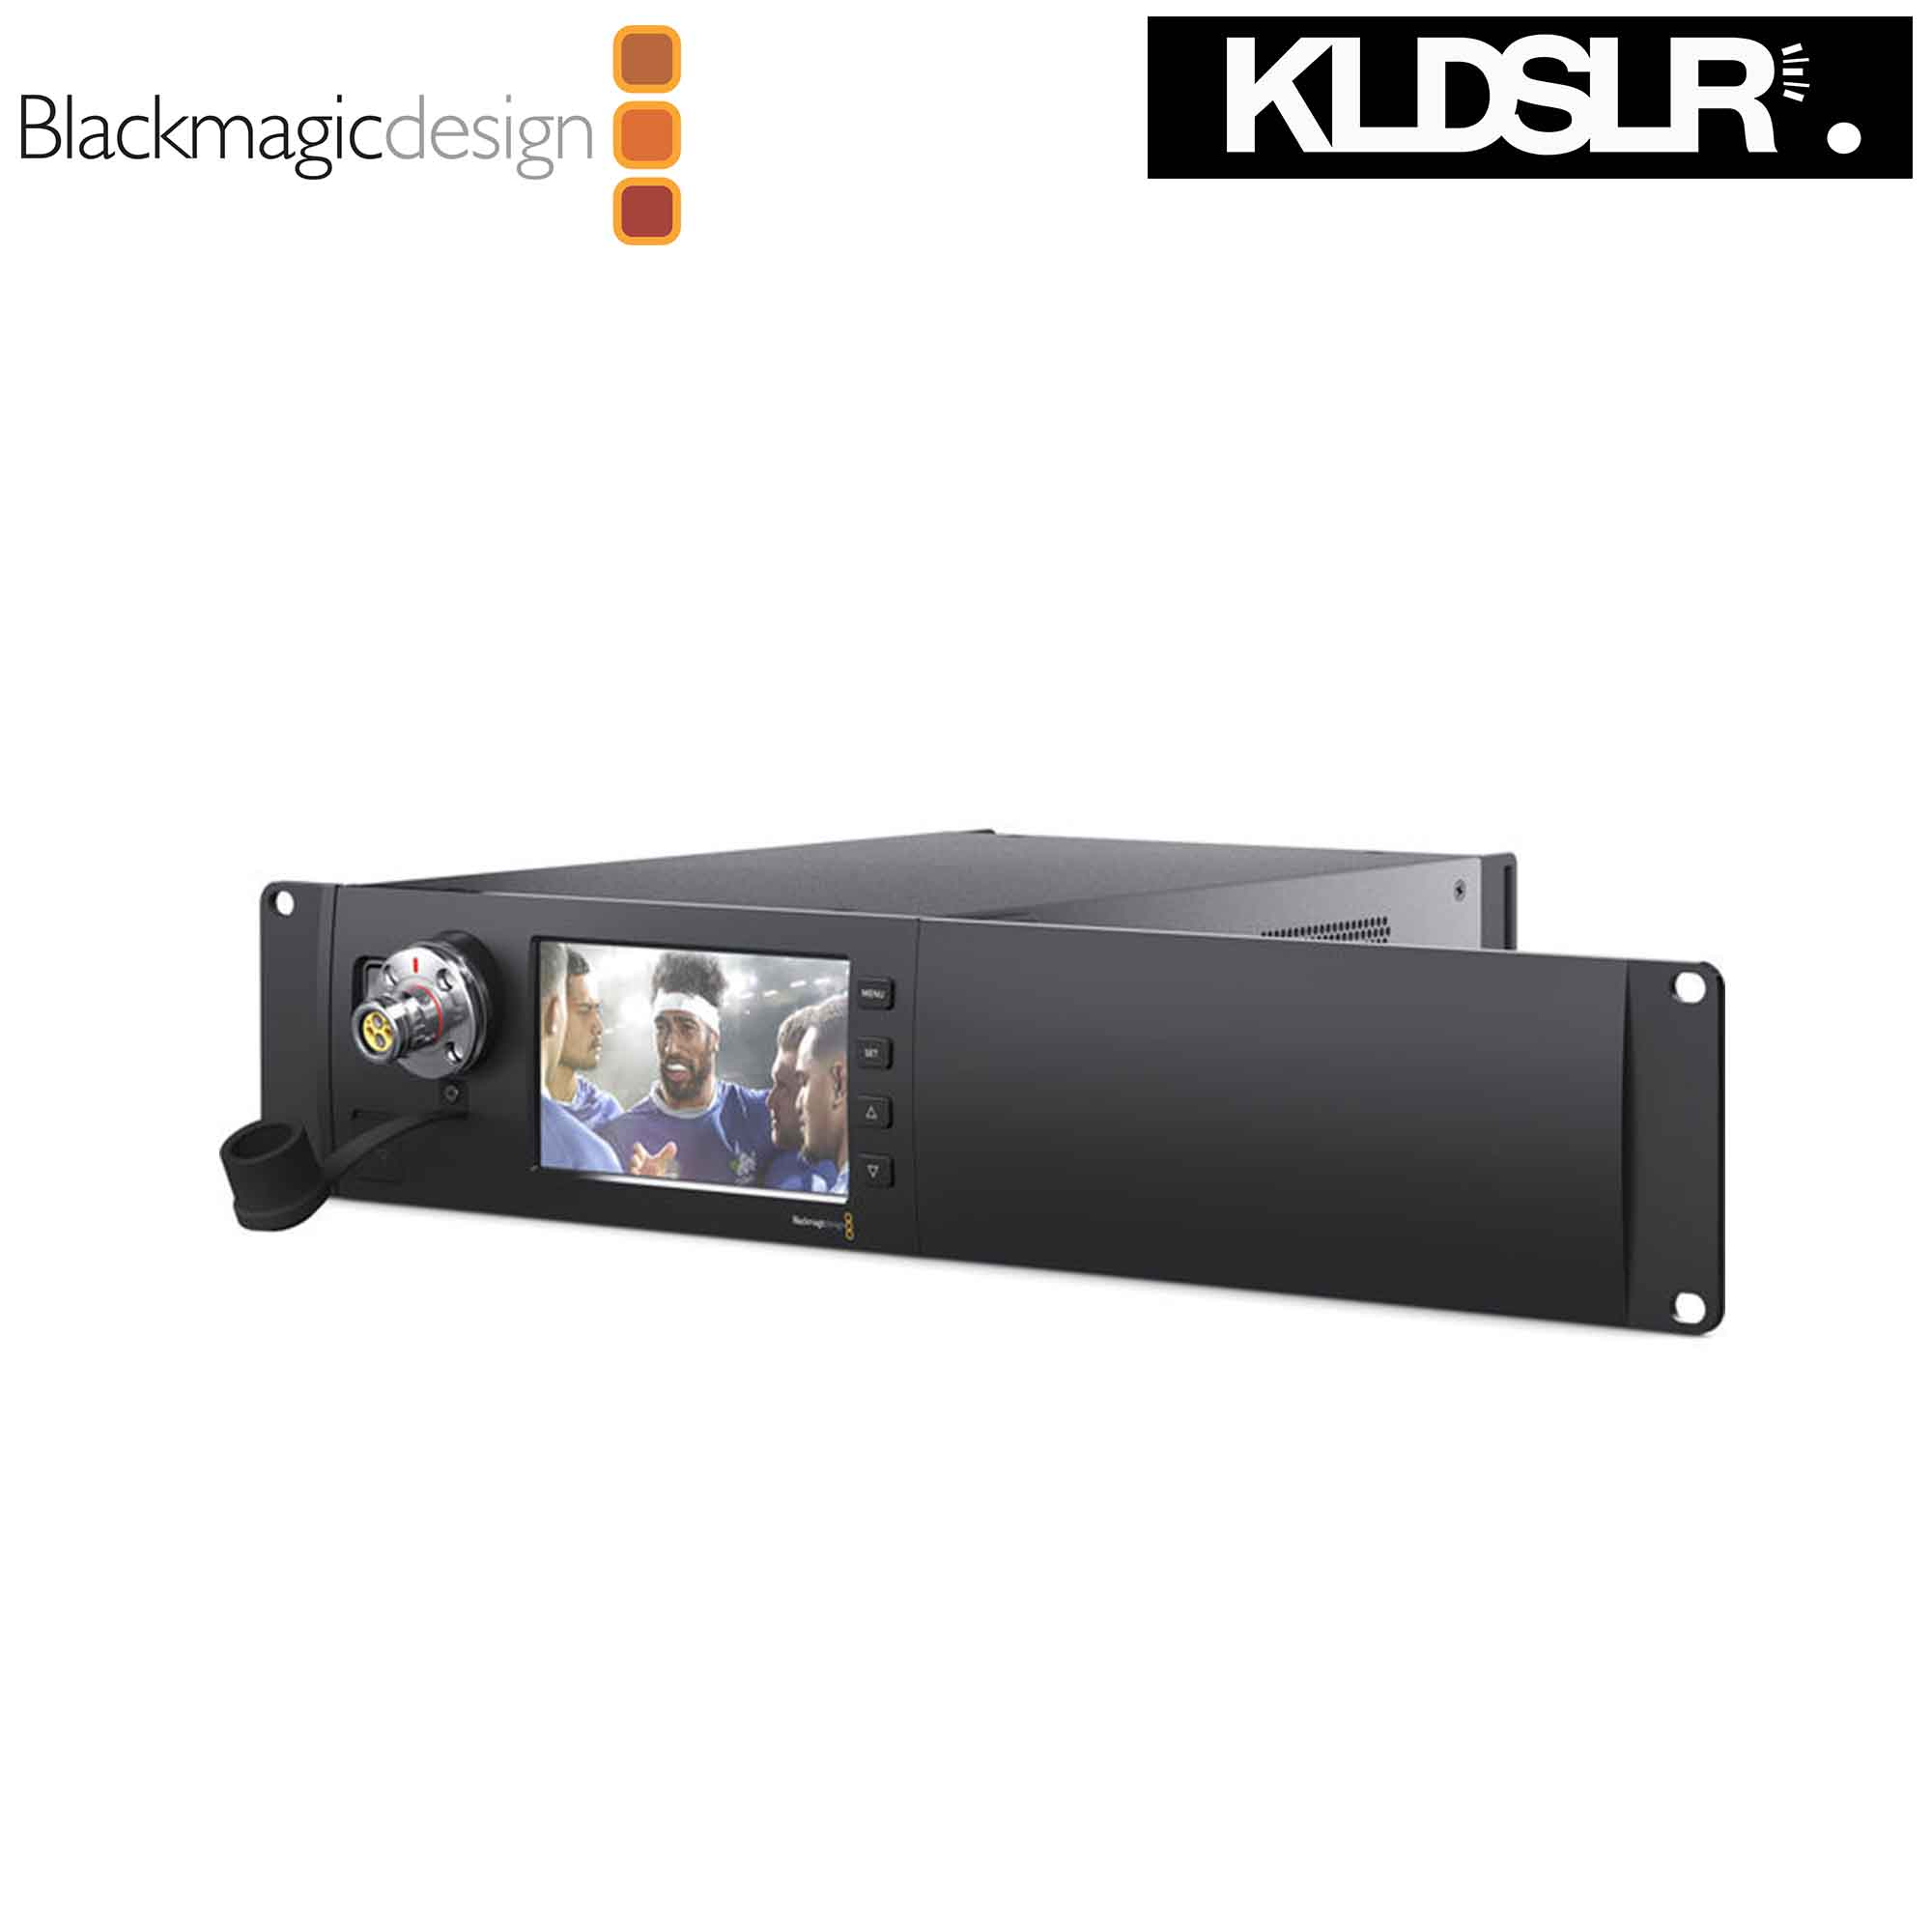 Blackmagic Design Studio Fiber Rack Kit (Blackmagic Malaysia)